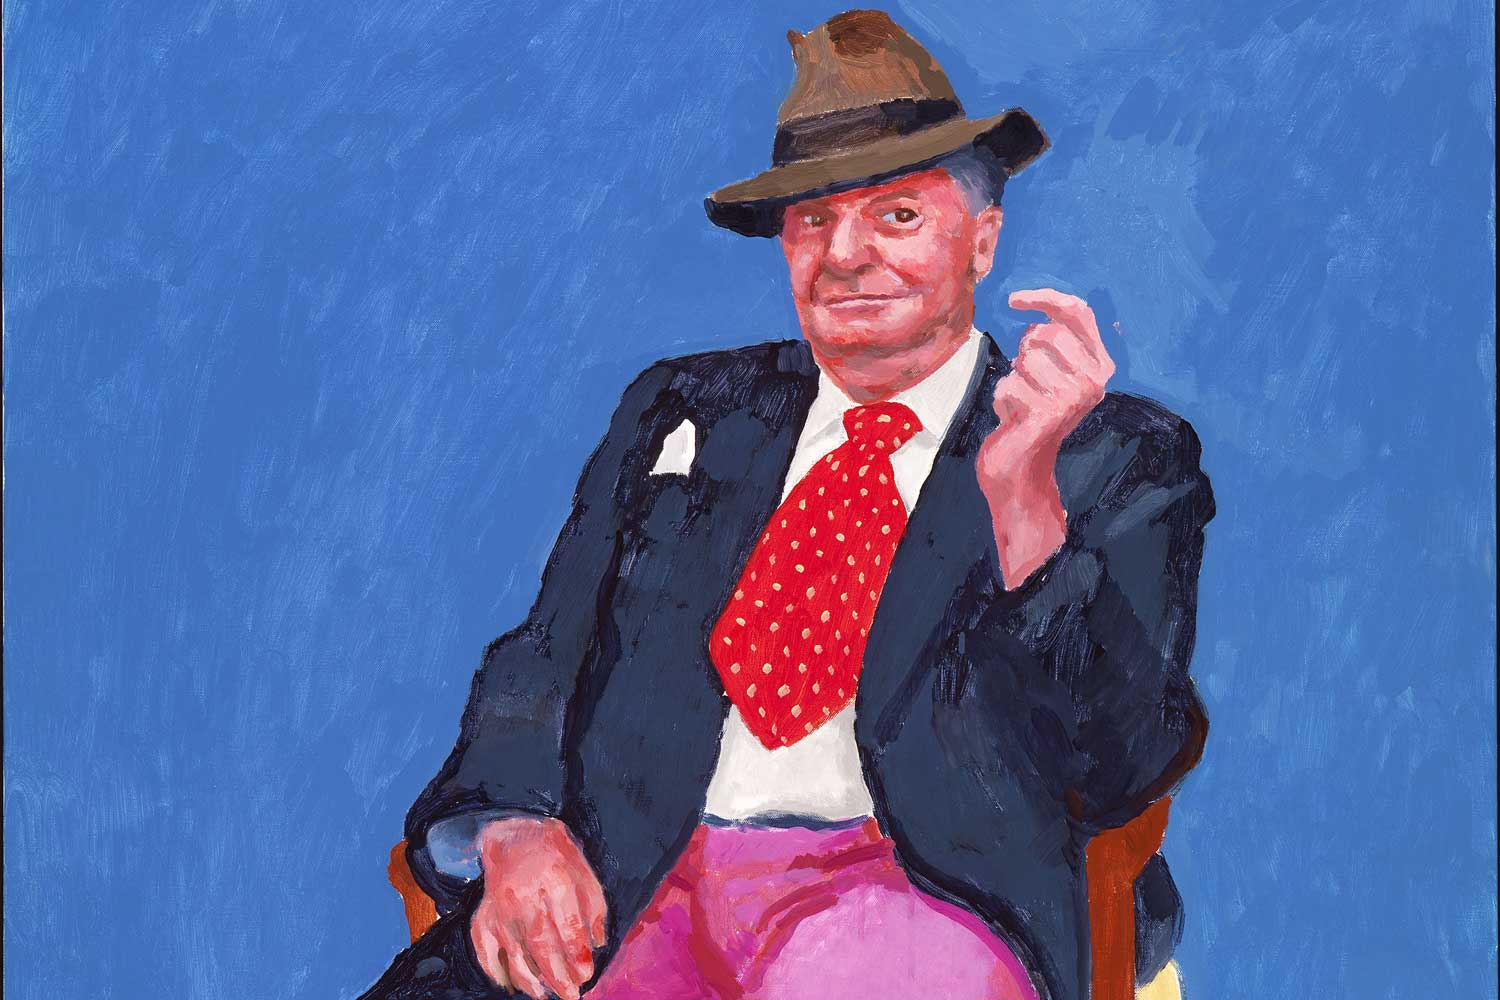 David Hockney,  Barry Humphries, 26th, 27th, 28th March 2015 (detail)  from  82 Portraits and 1 Still-life , 2015, collection of the artist, © David Hockney, photo by Richard Schmidt